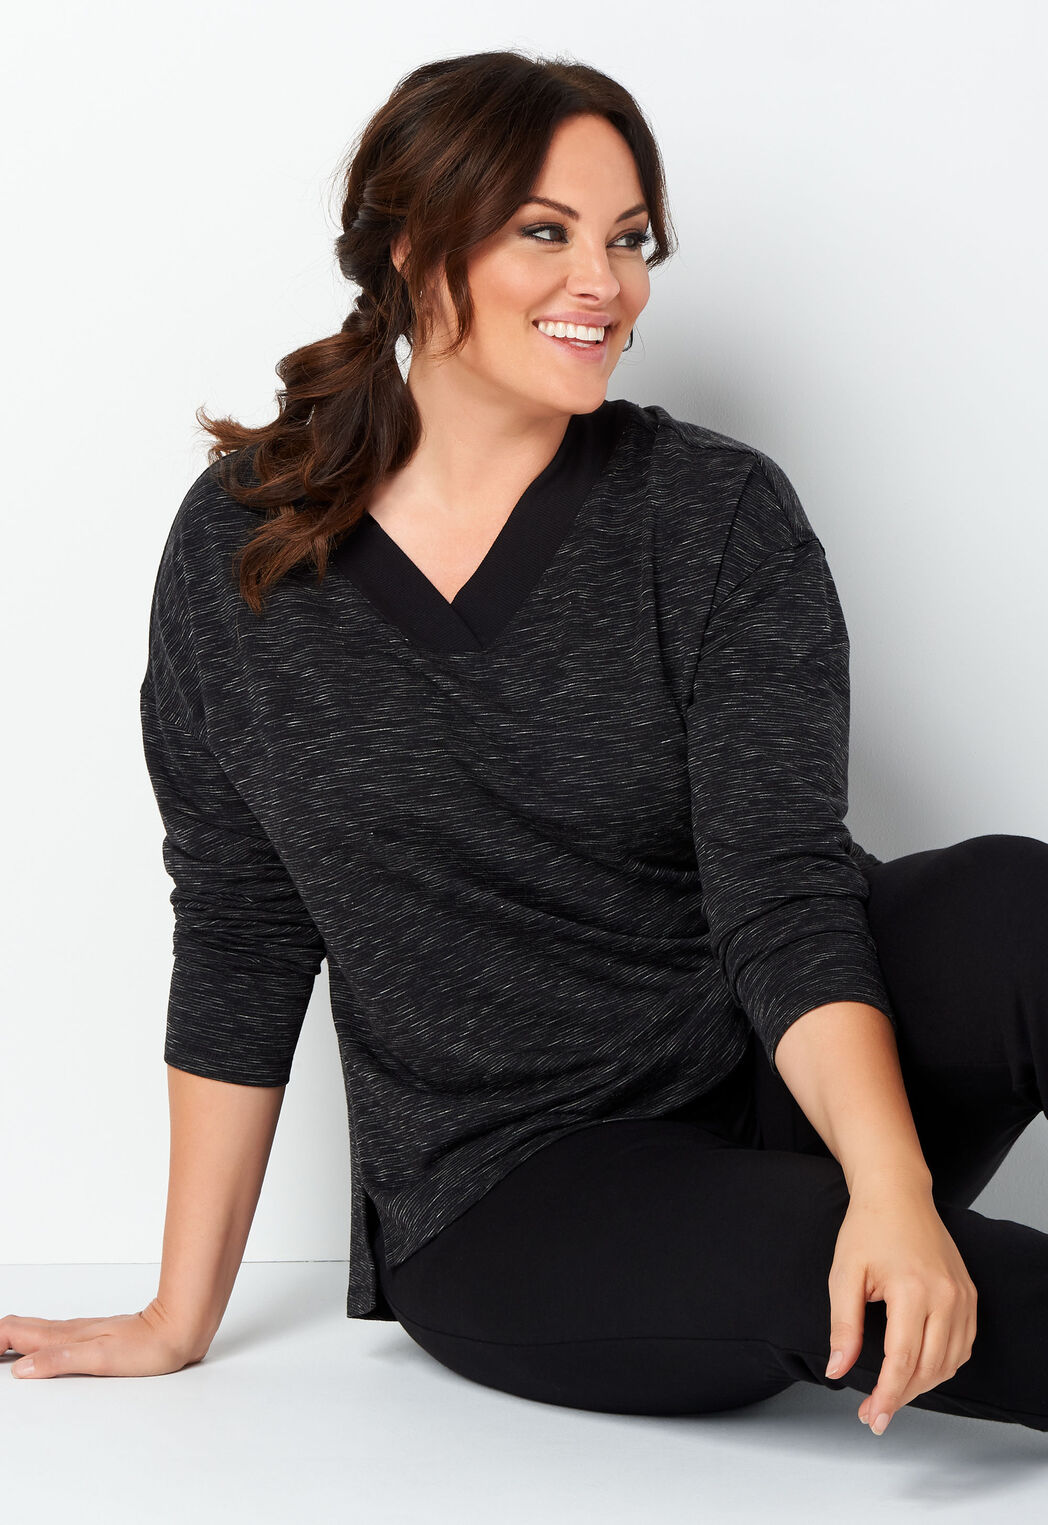 f41e9687e353f Relaxed Restyled Space Dye Plus Size V-Neck - CBK Web Store